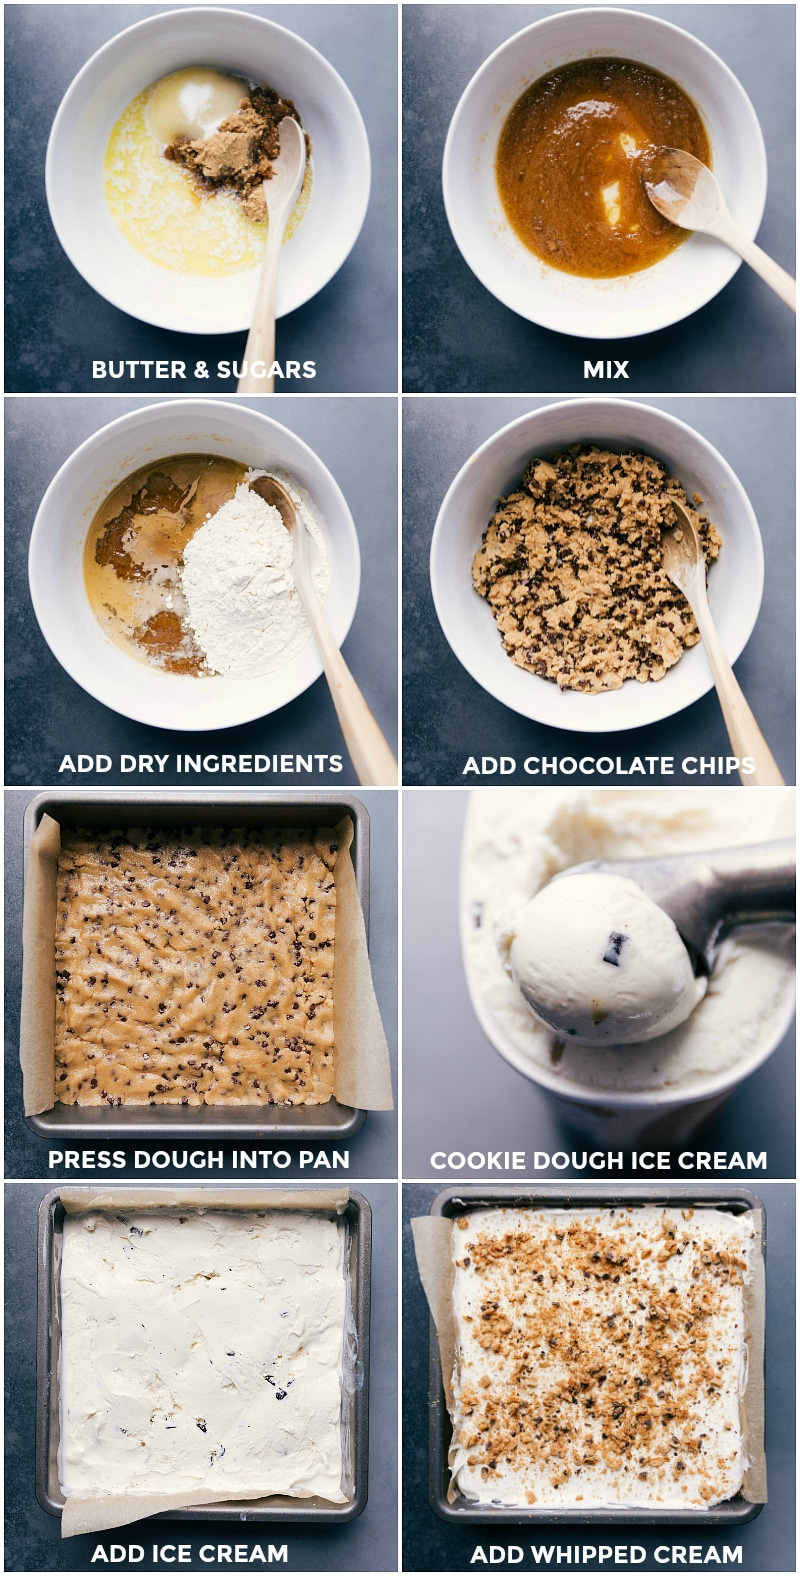 Process shots-- images of the cookie dough base being made and pressed into the pan; the ice cream being scooped over the dough; and whipped cream added on top and frozen.